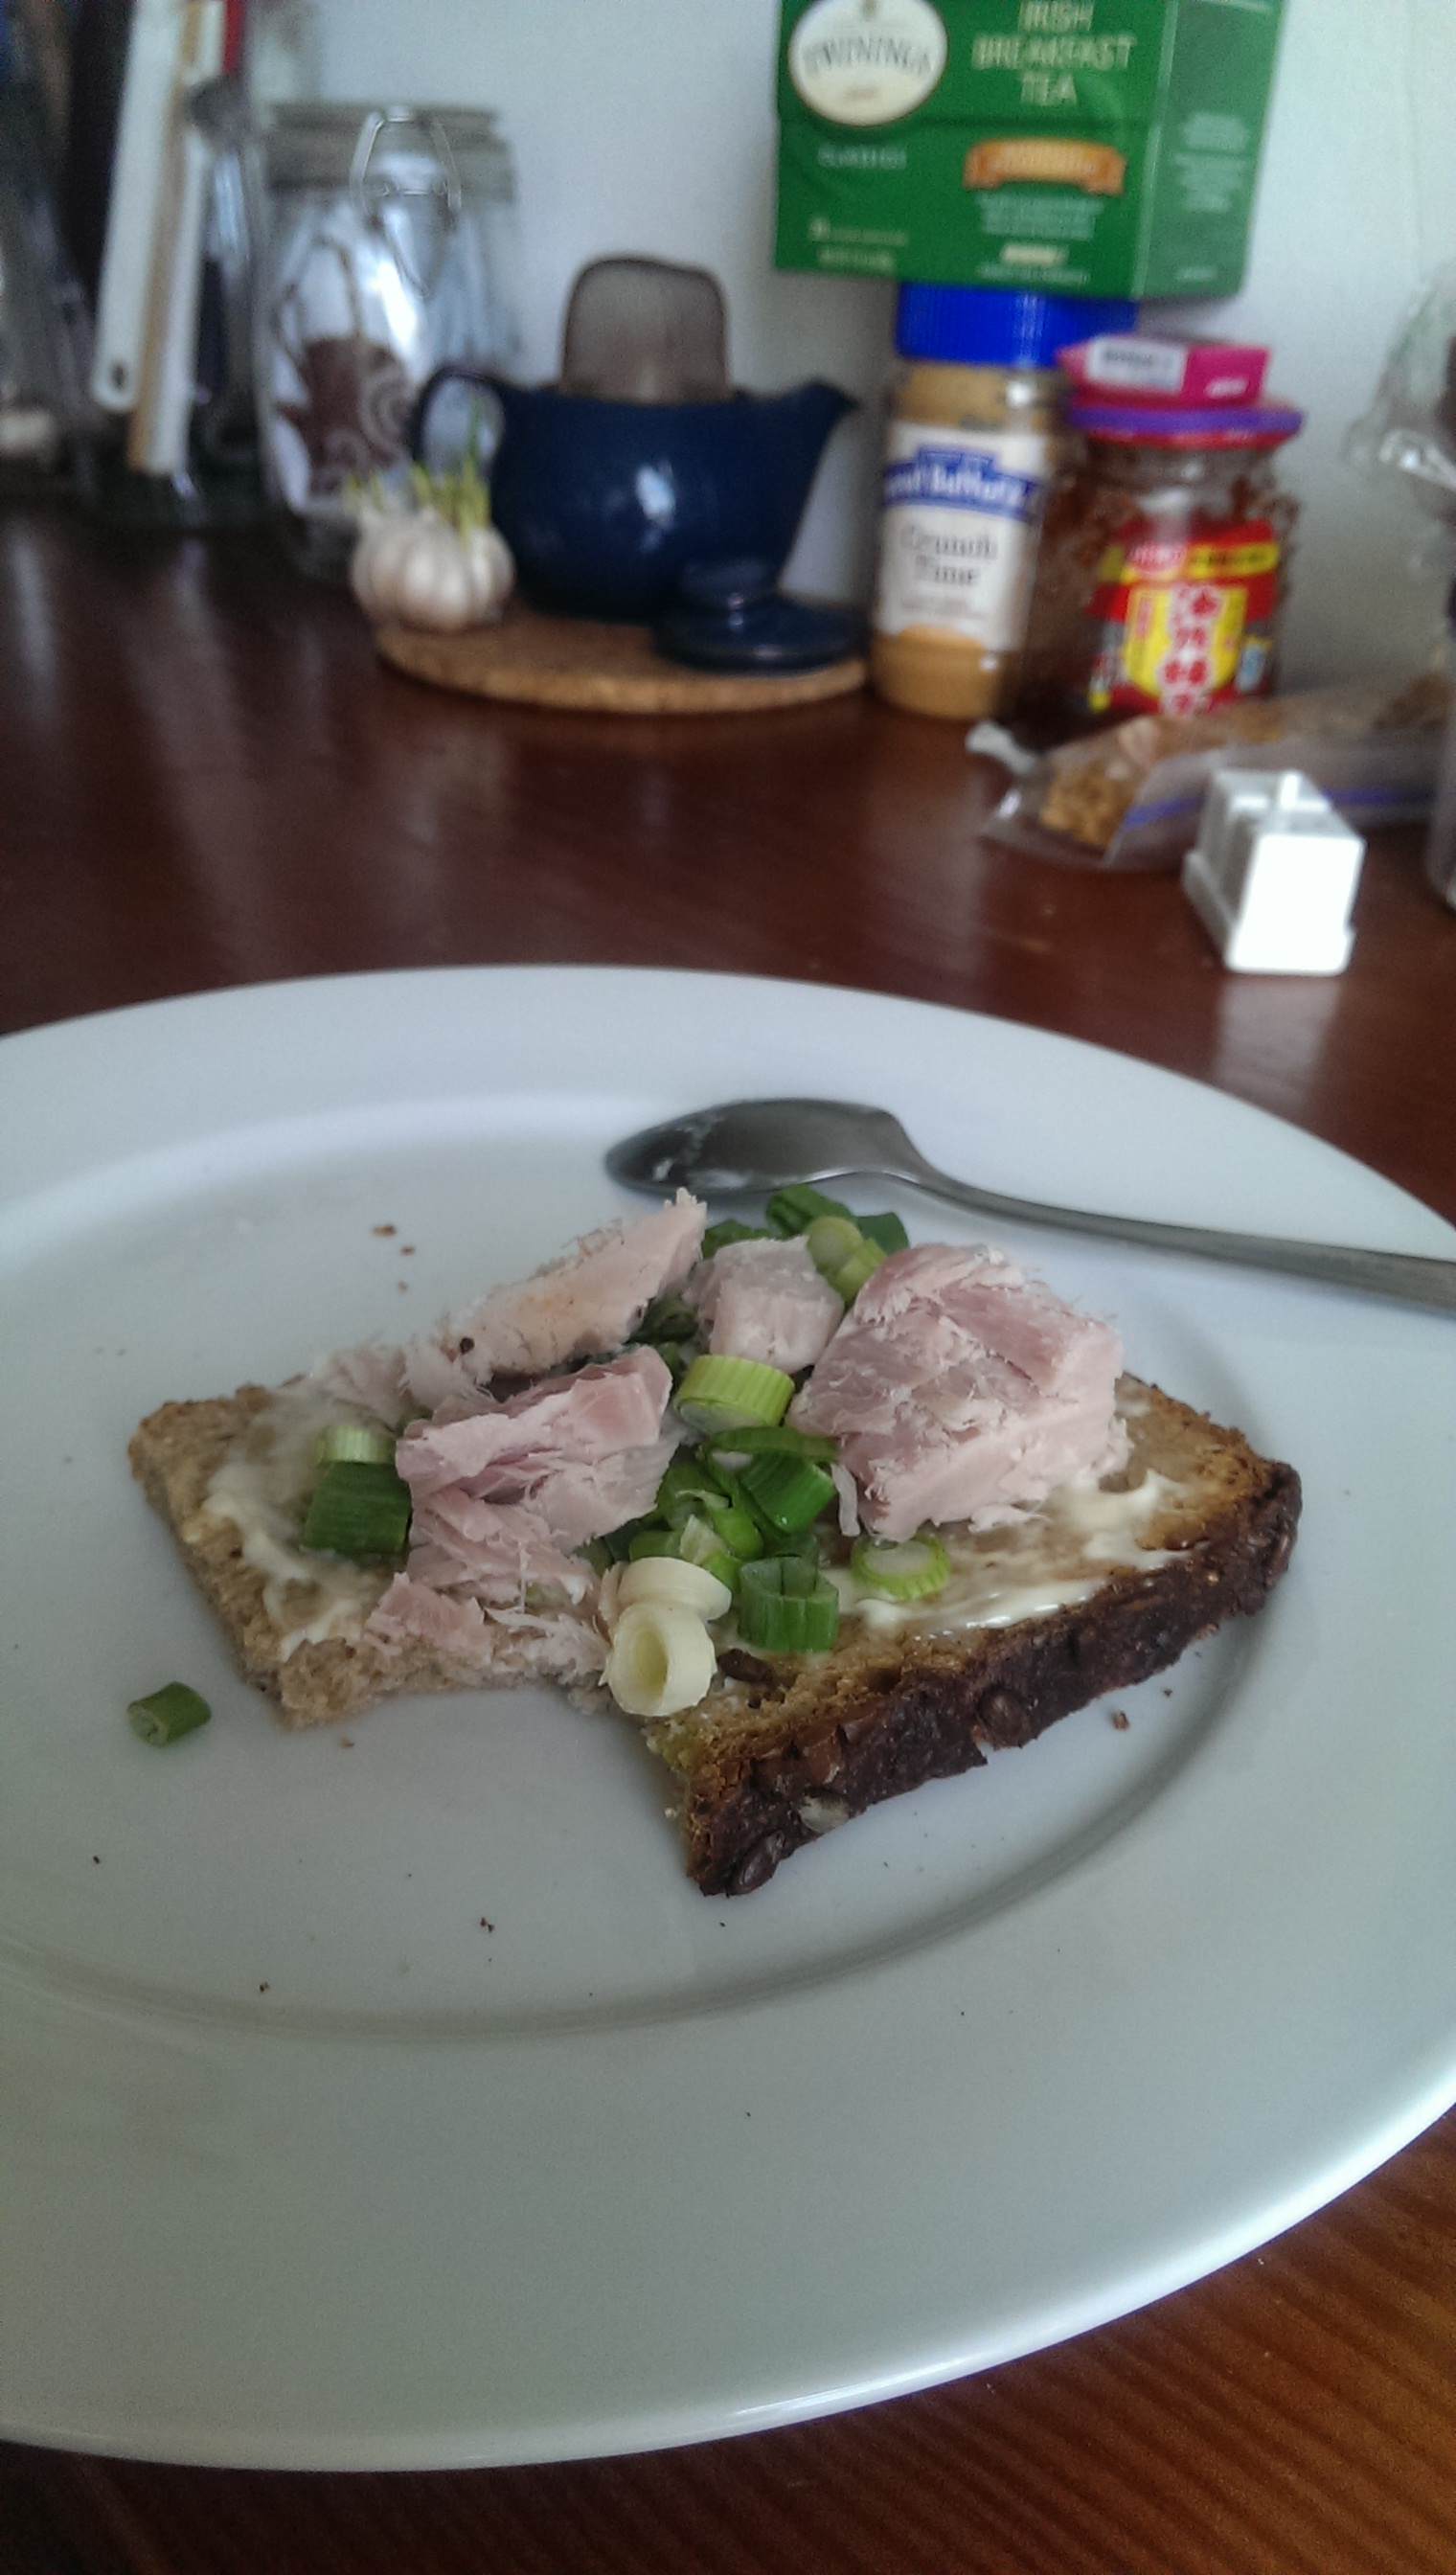 Smoked Tuna filet chunked onto a slice of sunflower seed rye with scallions.